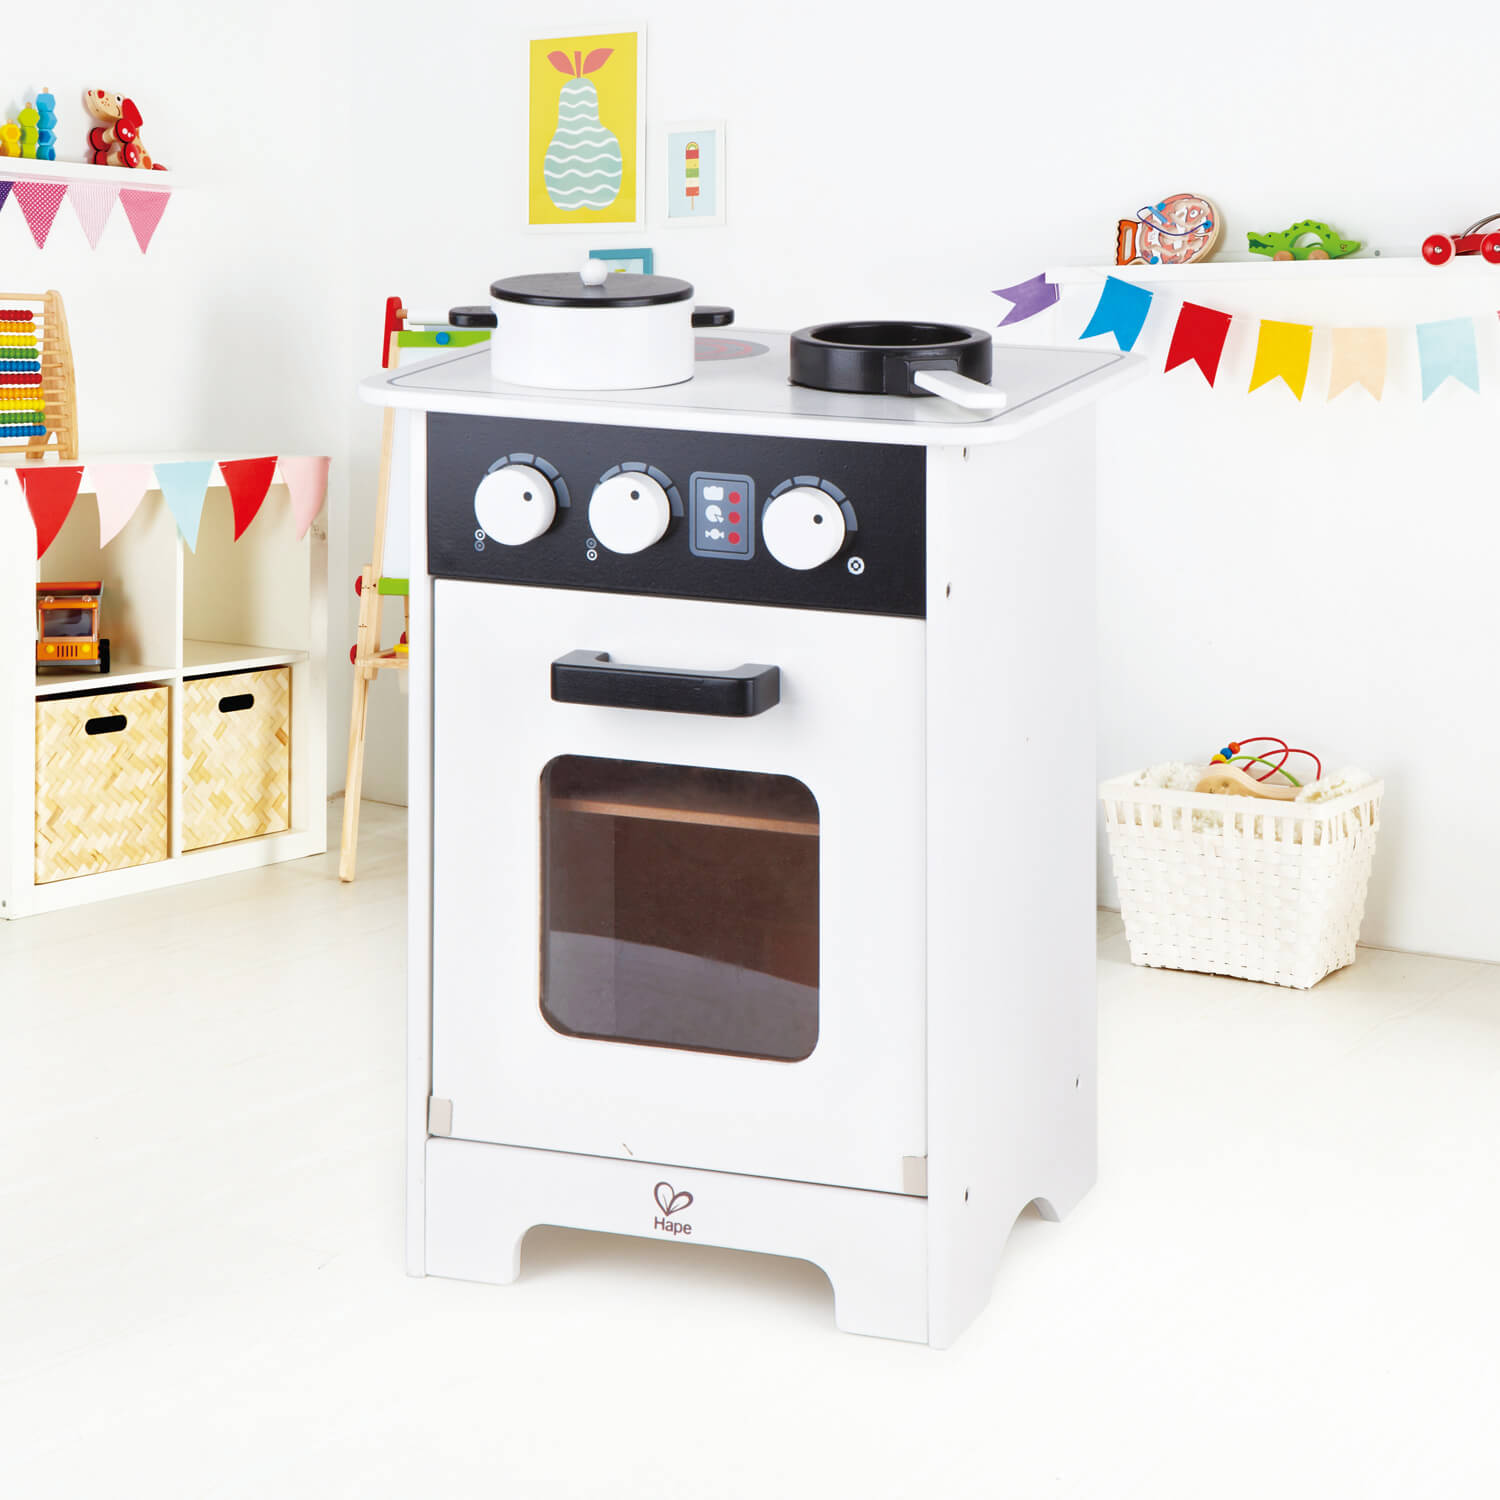 Mini Black White Gourmet Kitchen Hape